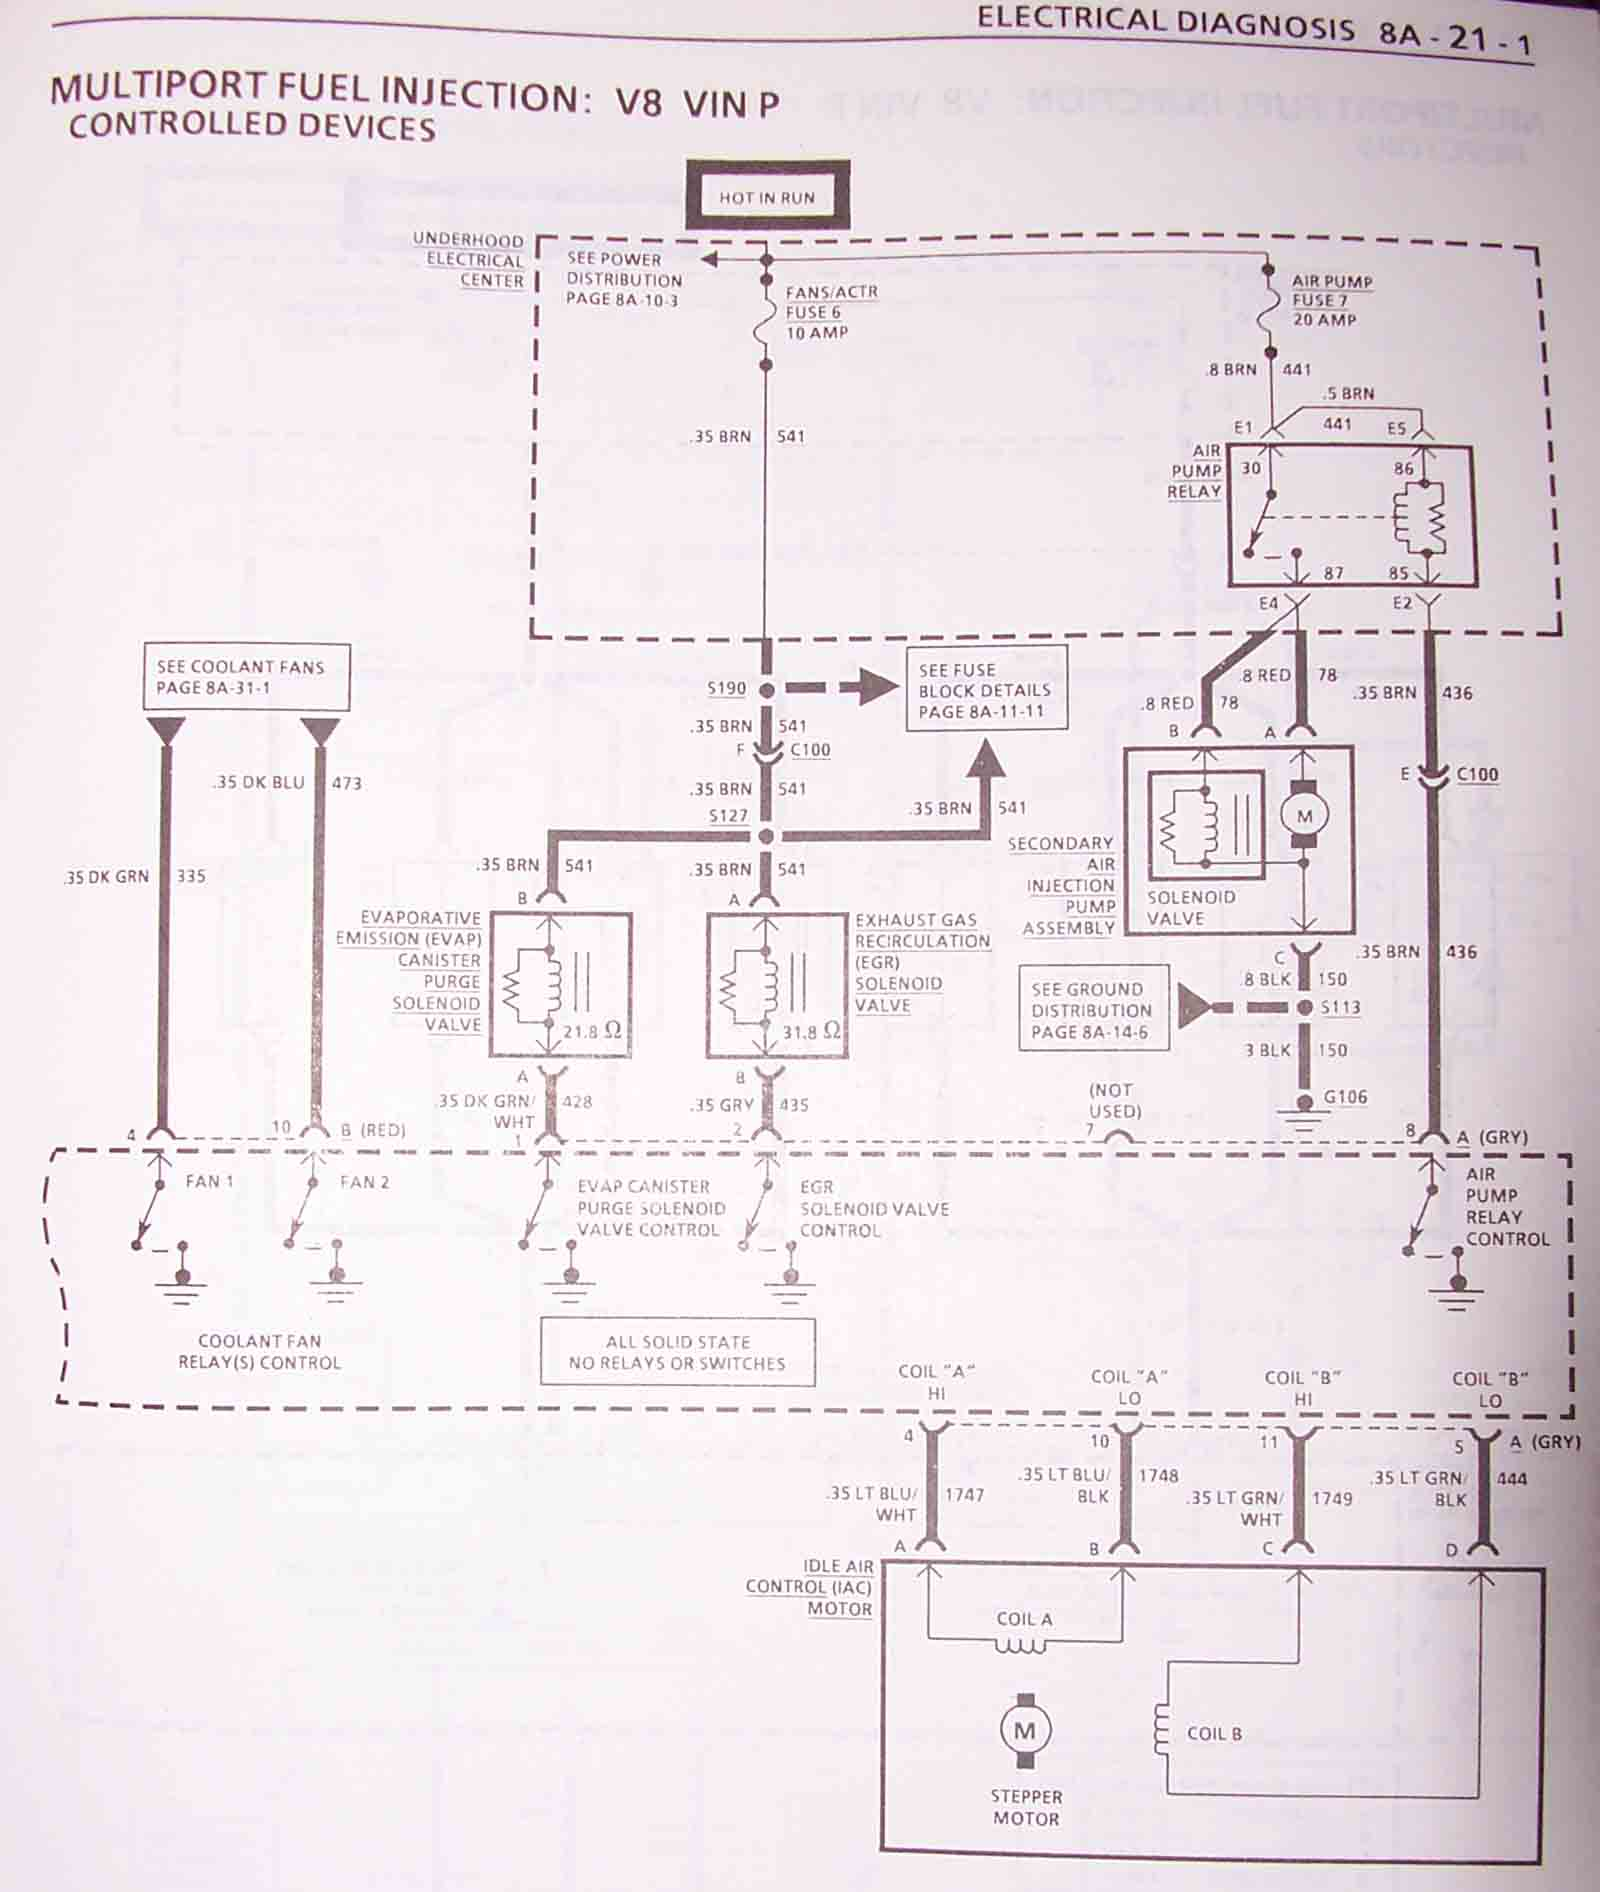 Lt1 Iac Wiring North East Fbody Association Wire Data Schema Diagram 93 21 Images